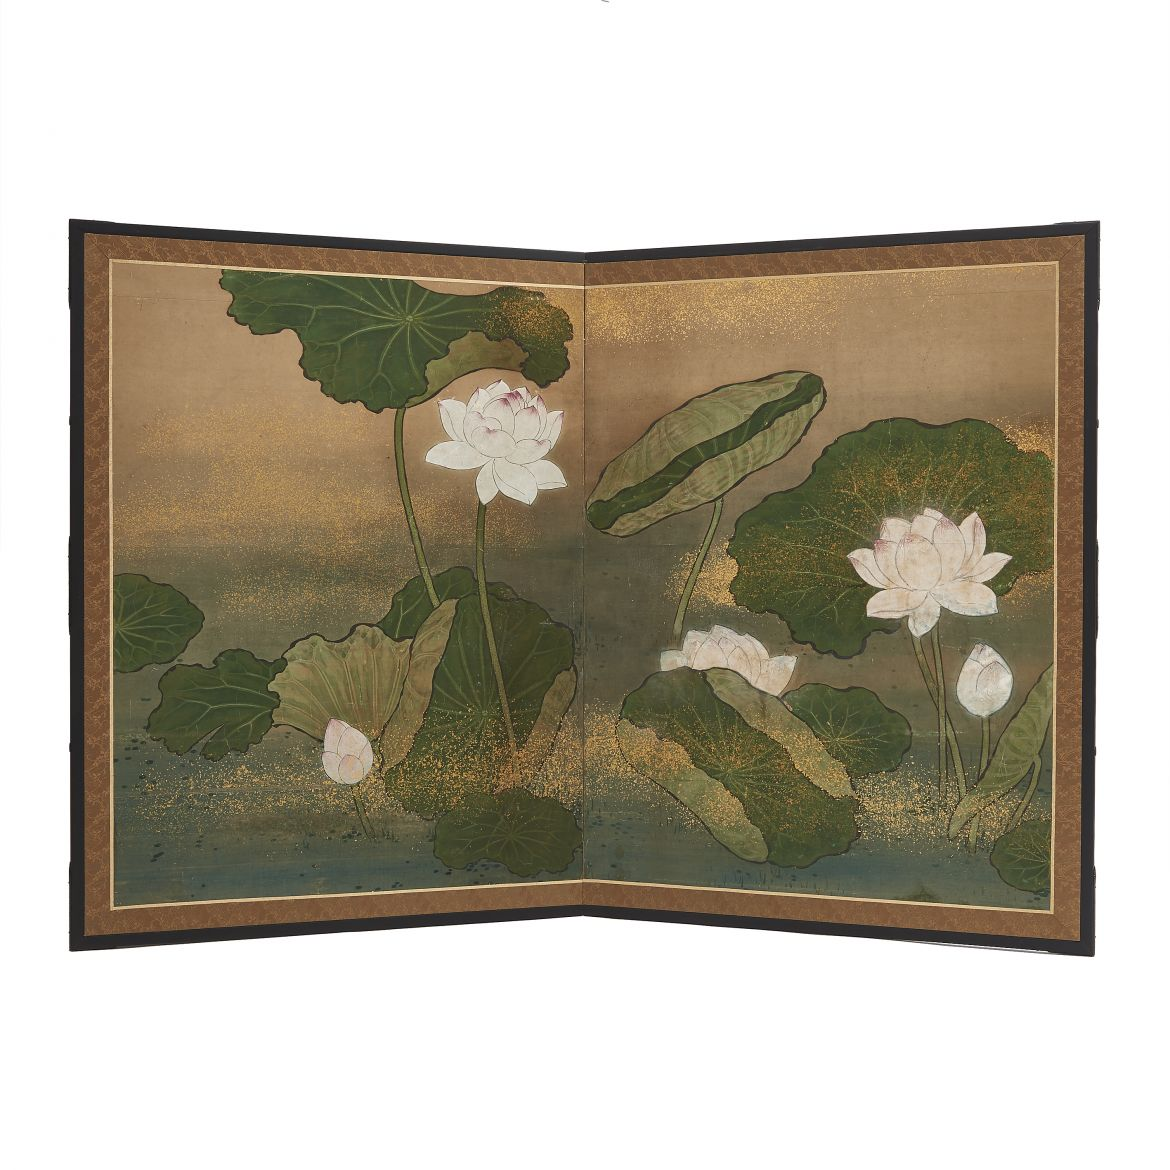 Painted Screen with Water Lilies